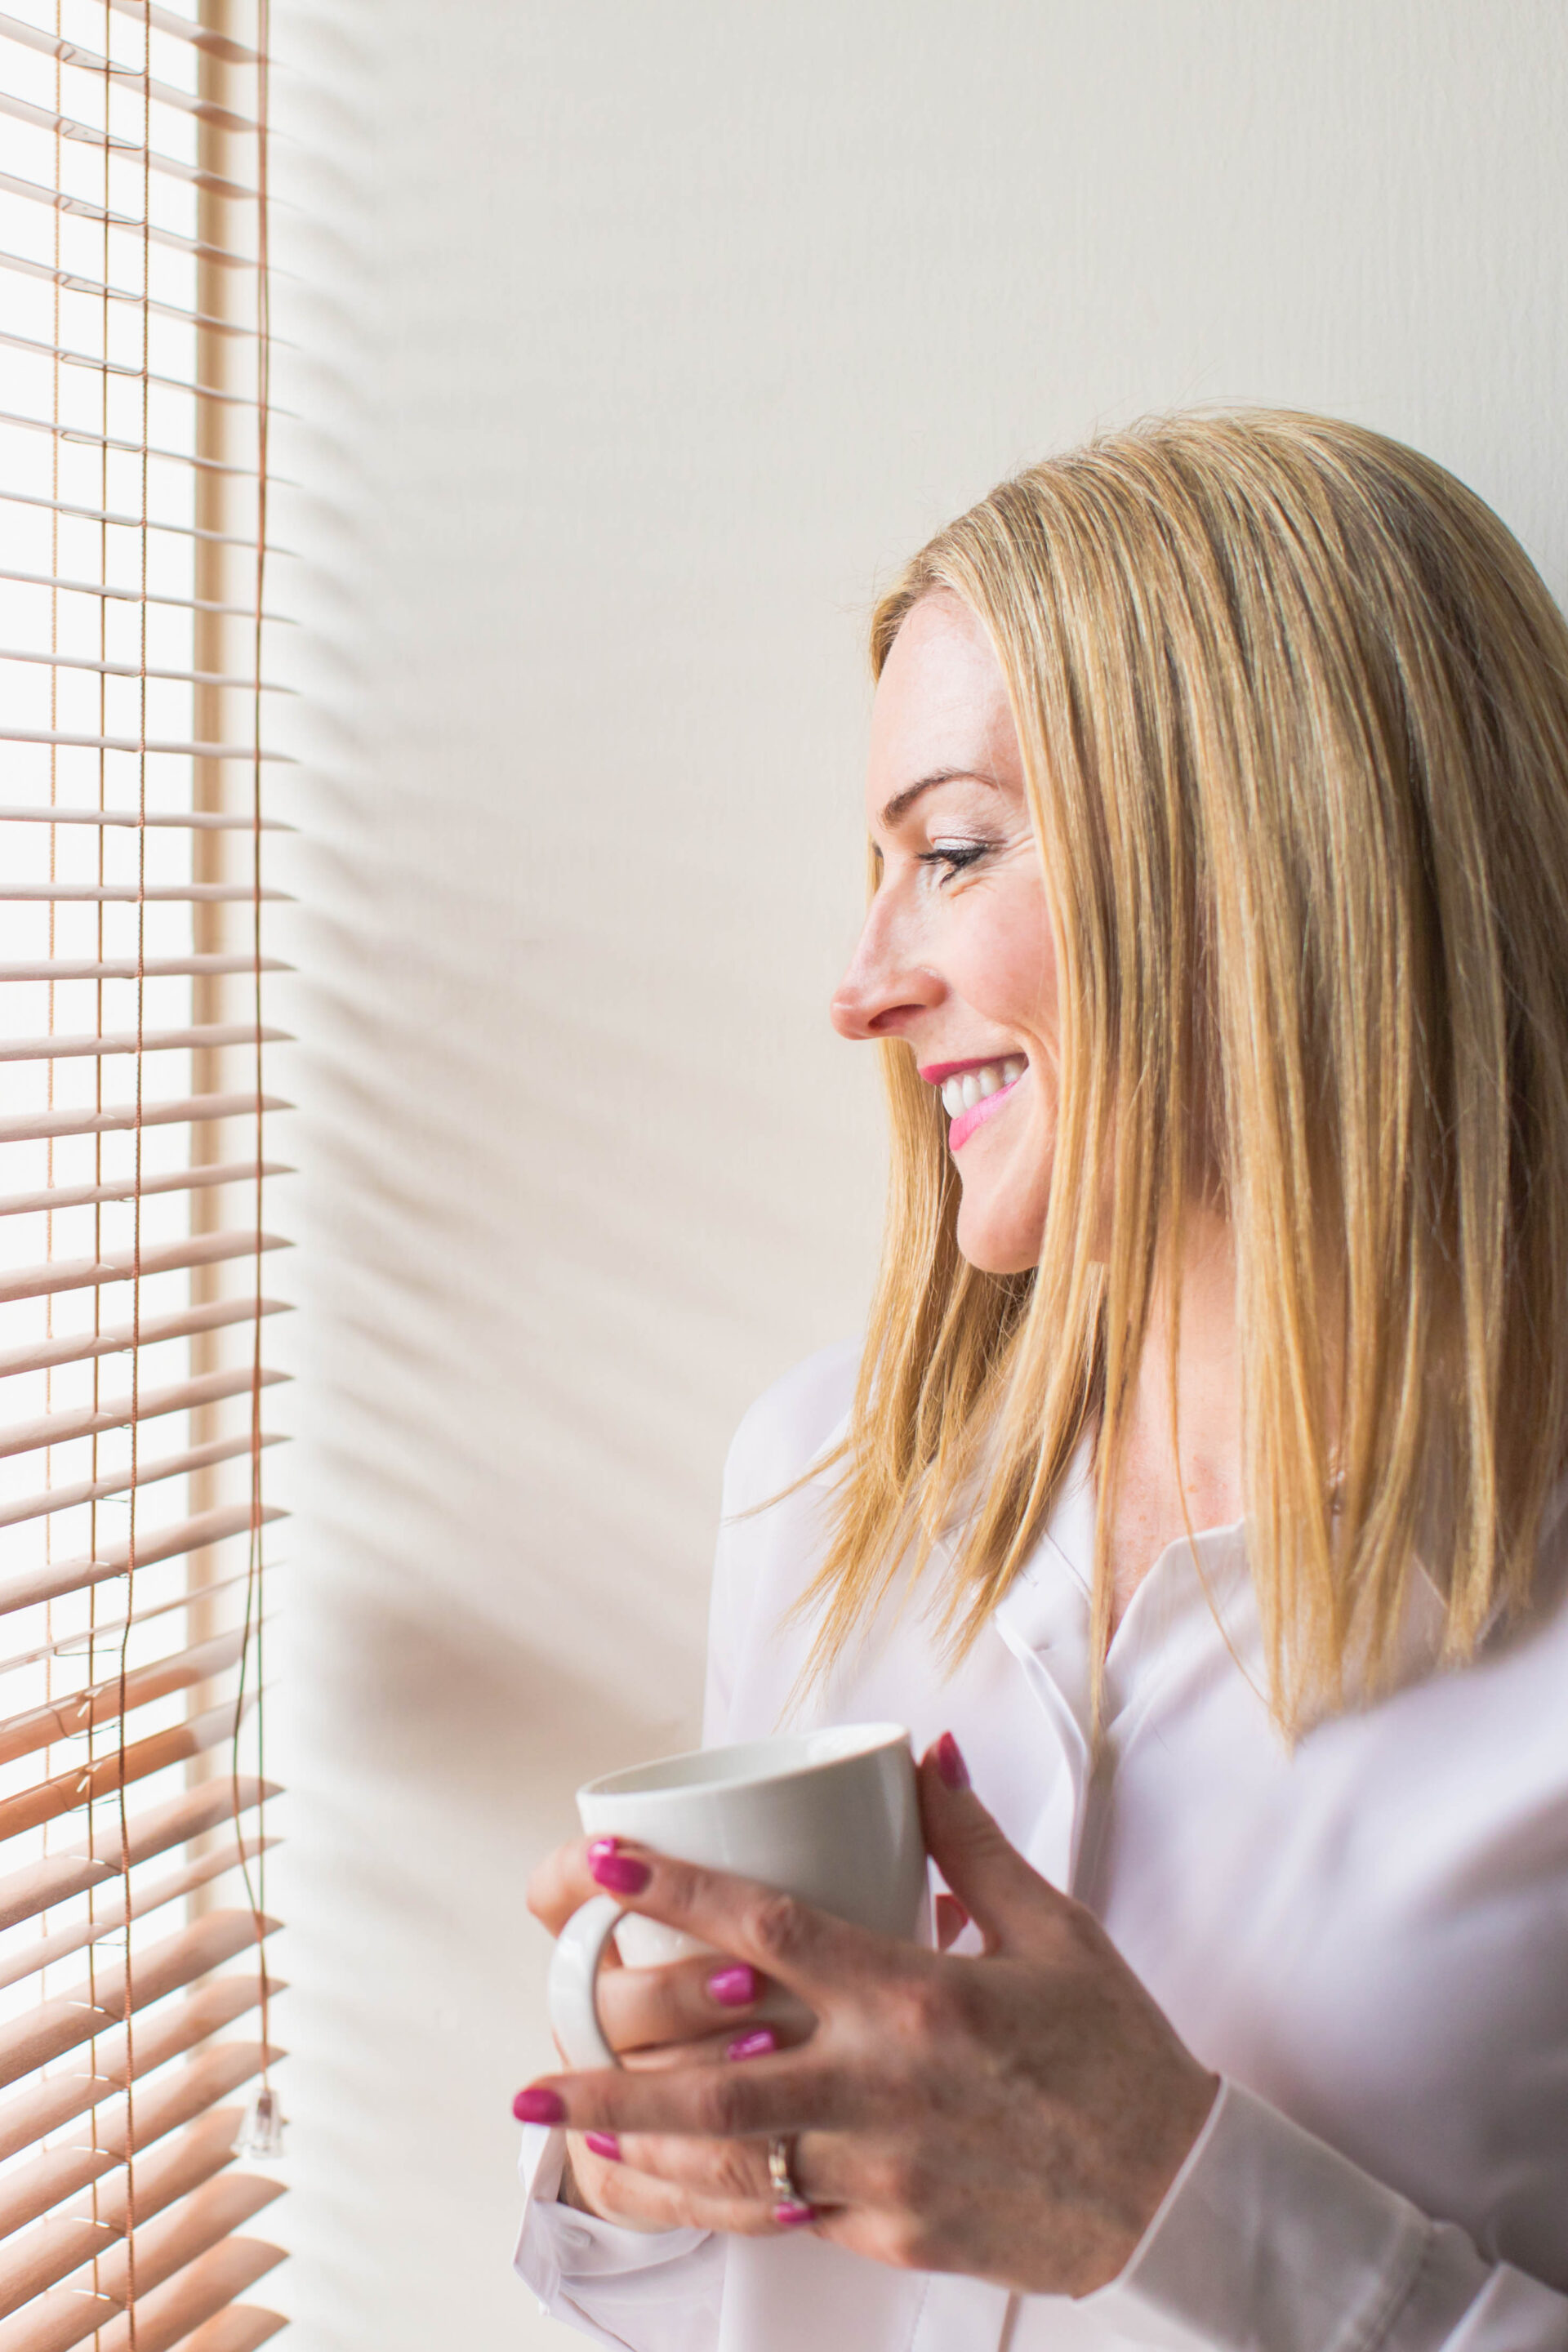 Female personal branding shot - woman with cup looking out window